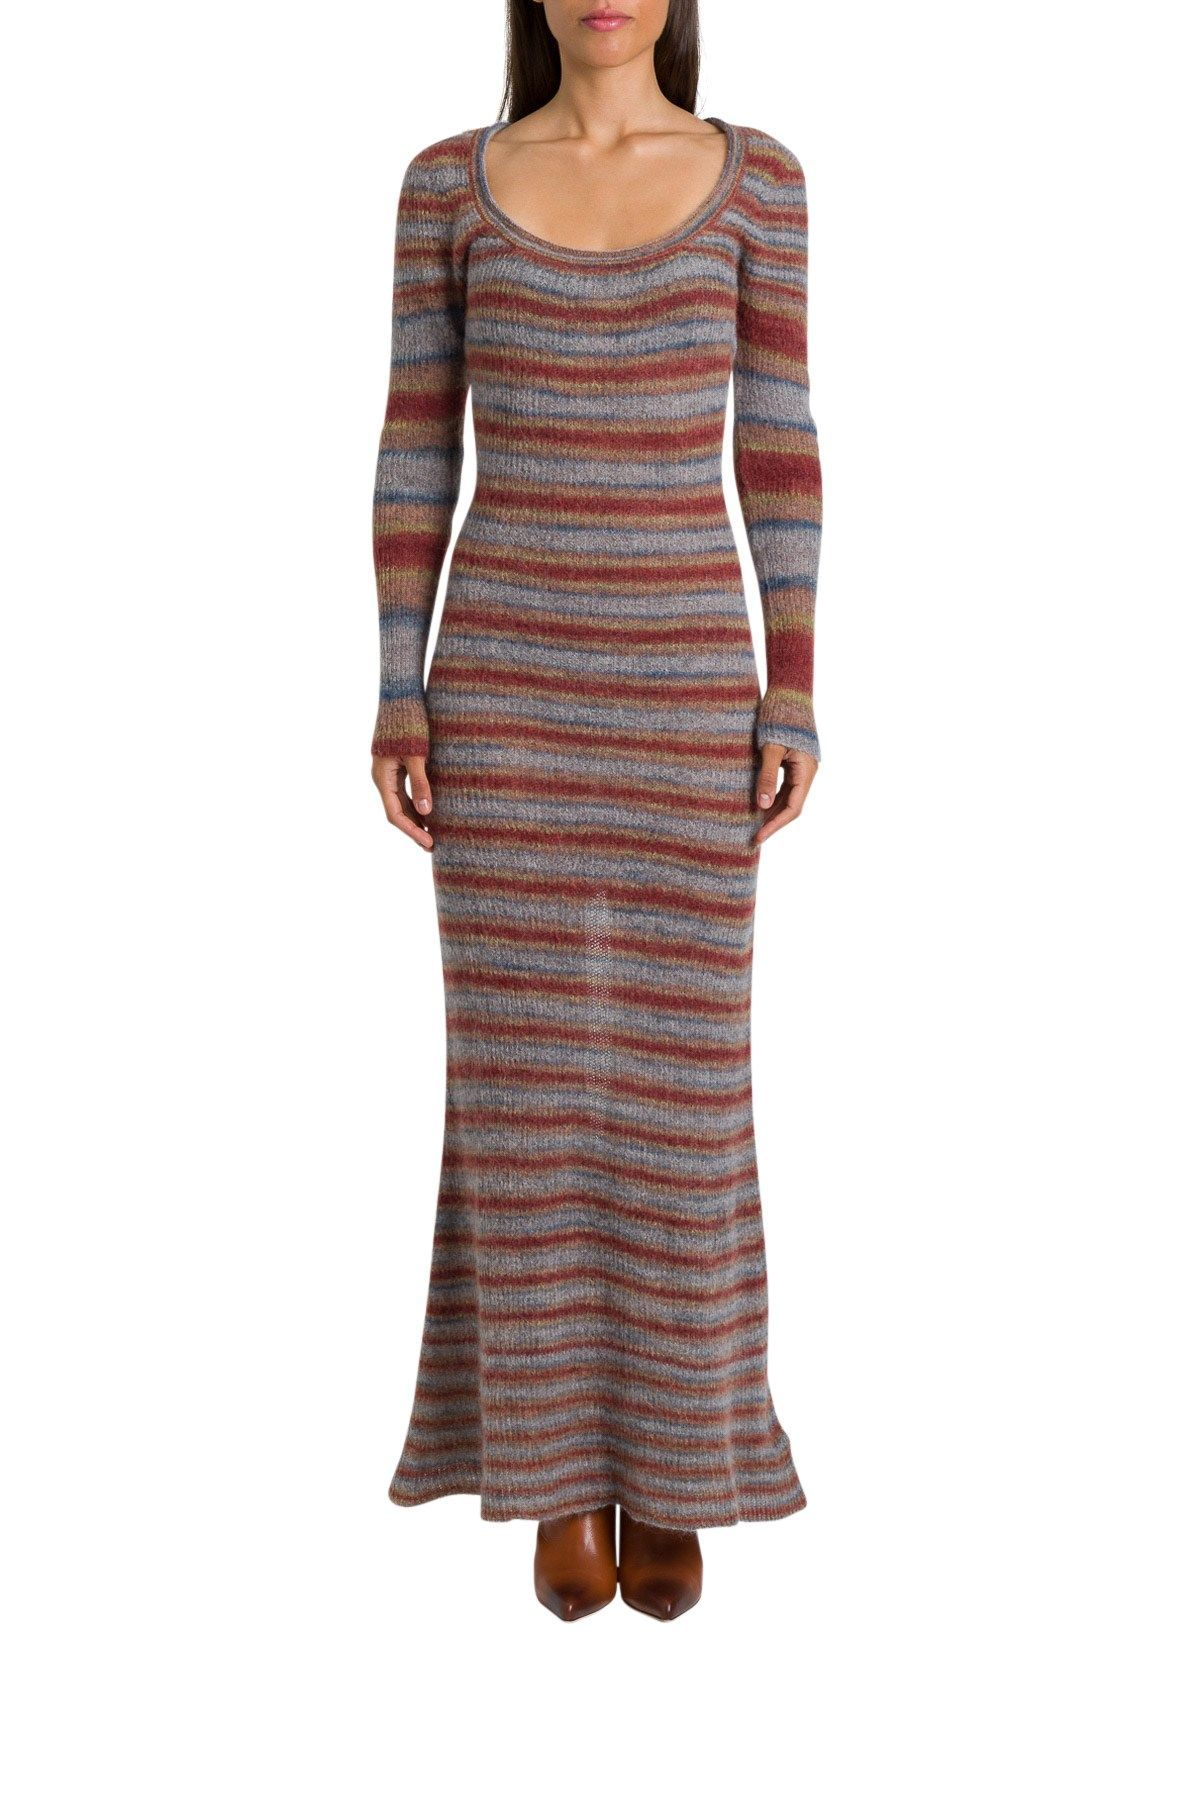 Jacquemus Long Sleeve Knitted Striped Maxi Dress In Red Modesens Striped Maxi Dresses Viscose Dress Long Sleeve Knit [ 1800 x 1200 Pixel ]